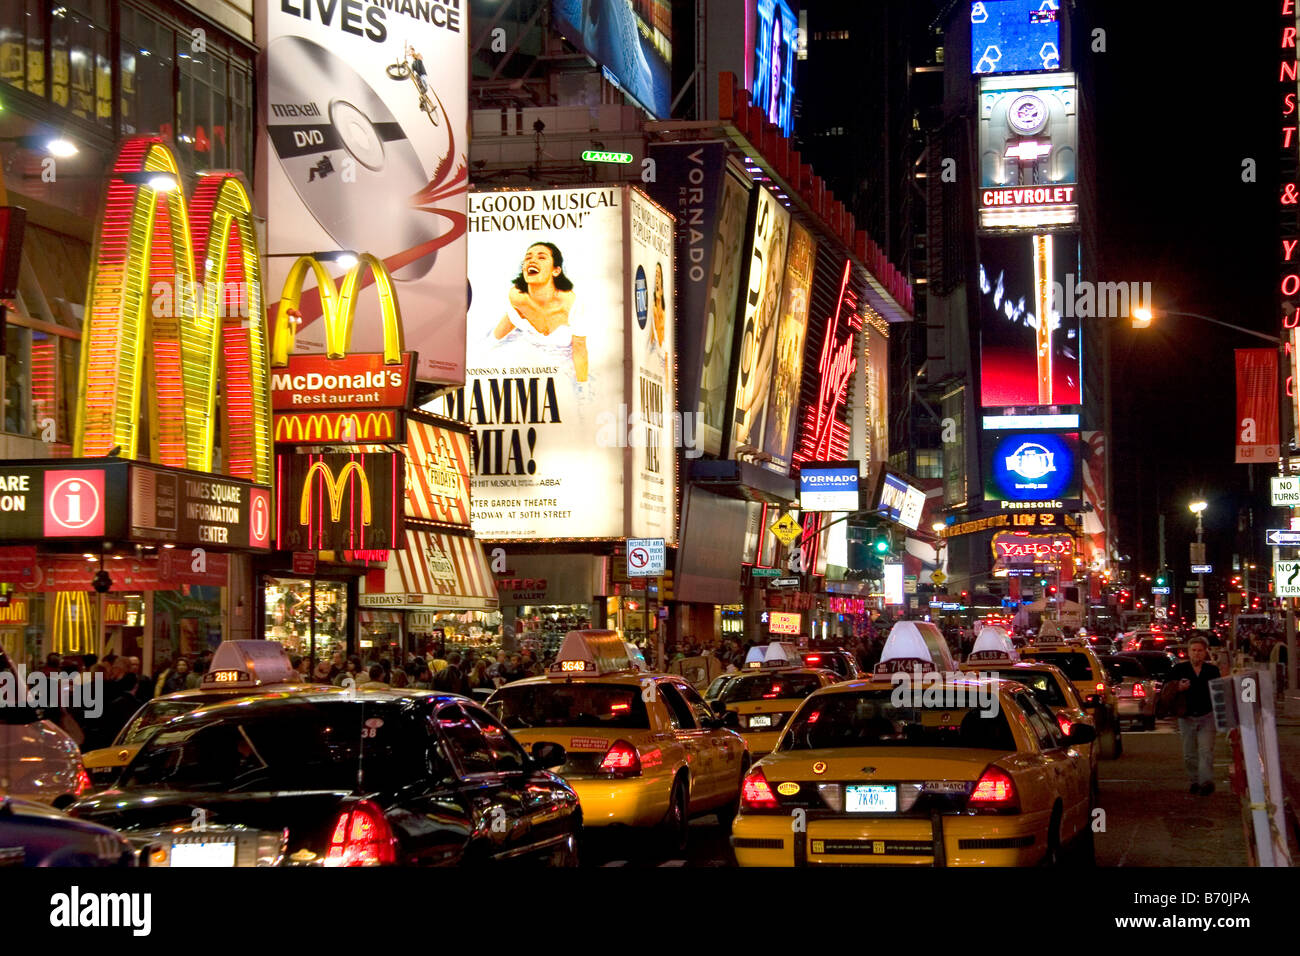 Broadway theatres in midtown Manhattan New York City New York USA - Stock Image